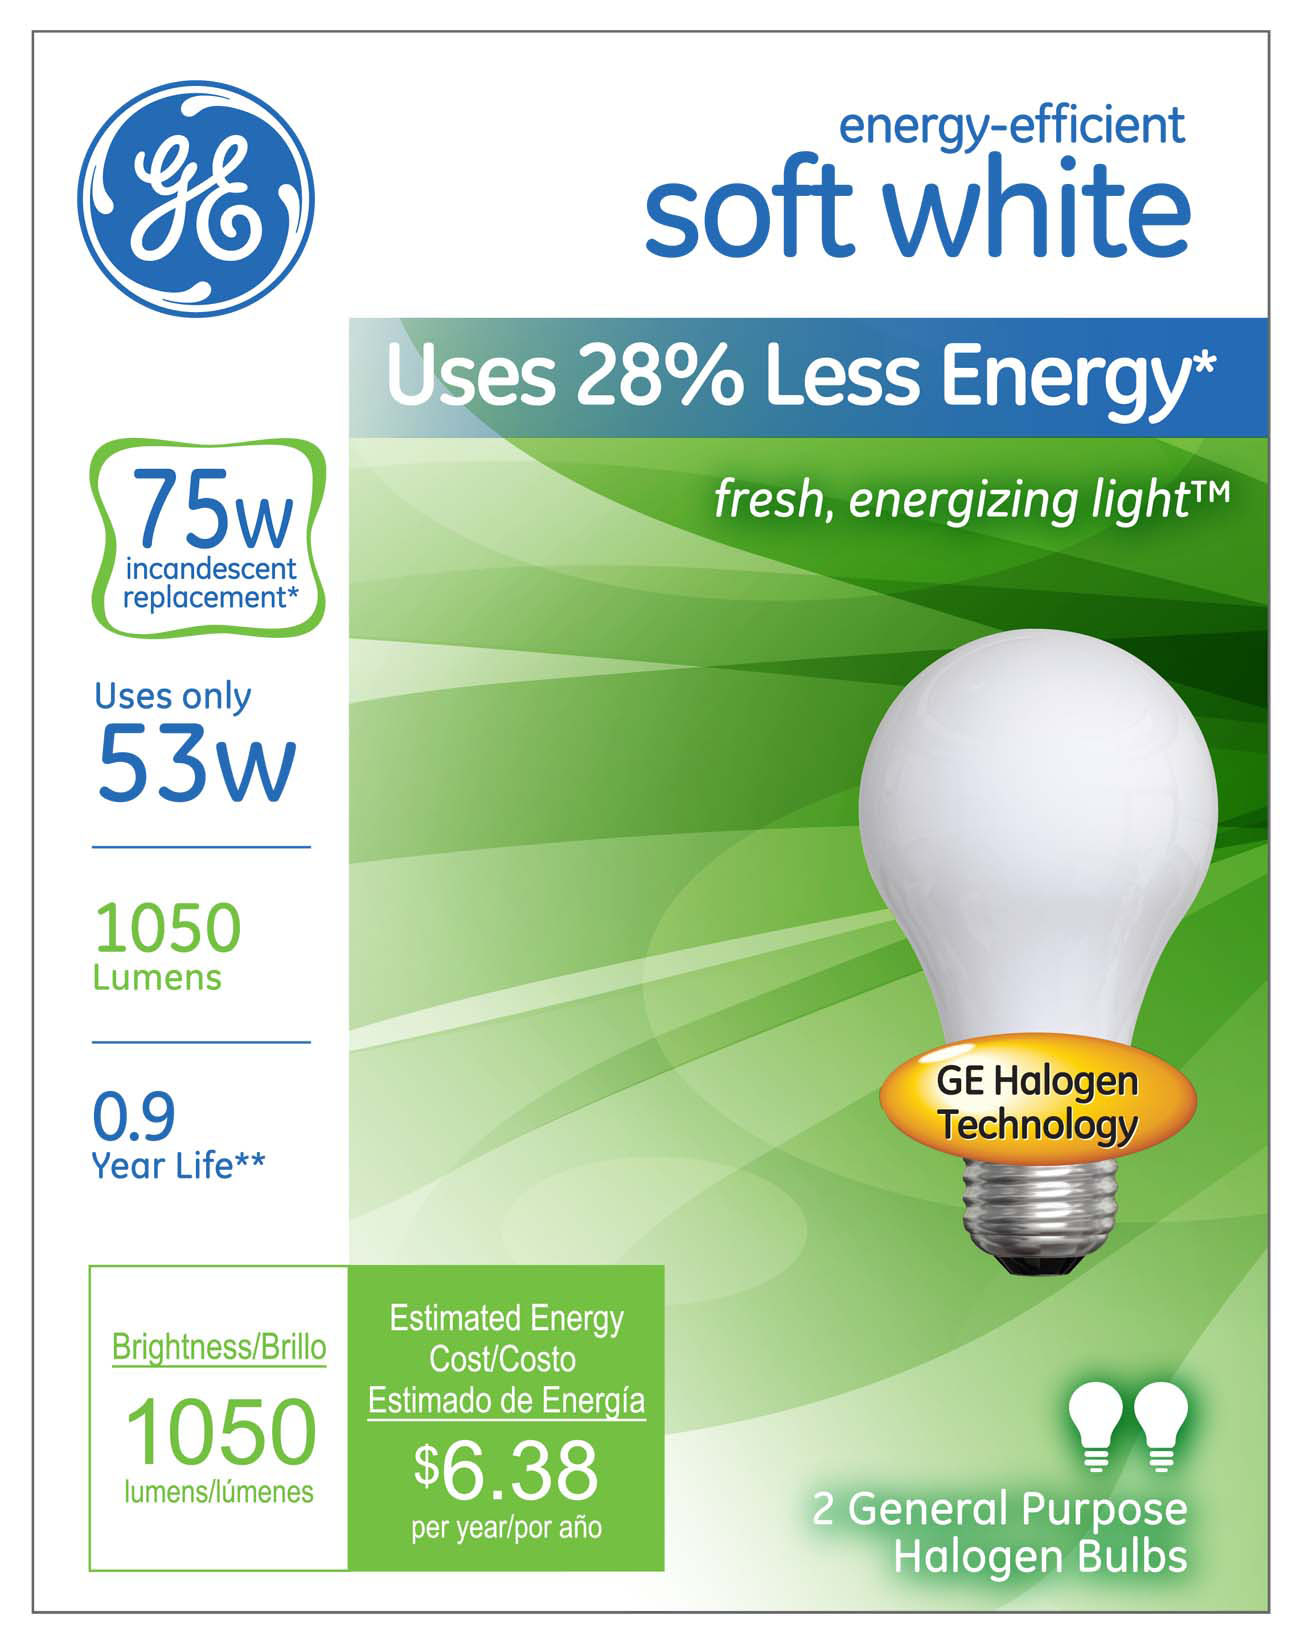 GEs Energy Efficient Soft White Halogen Light Bulb Offers Big